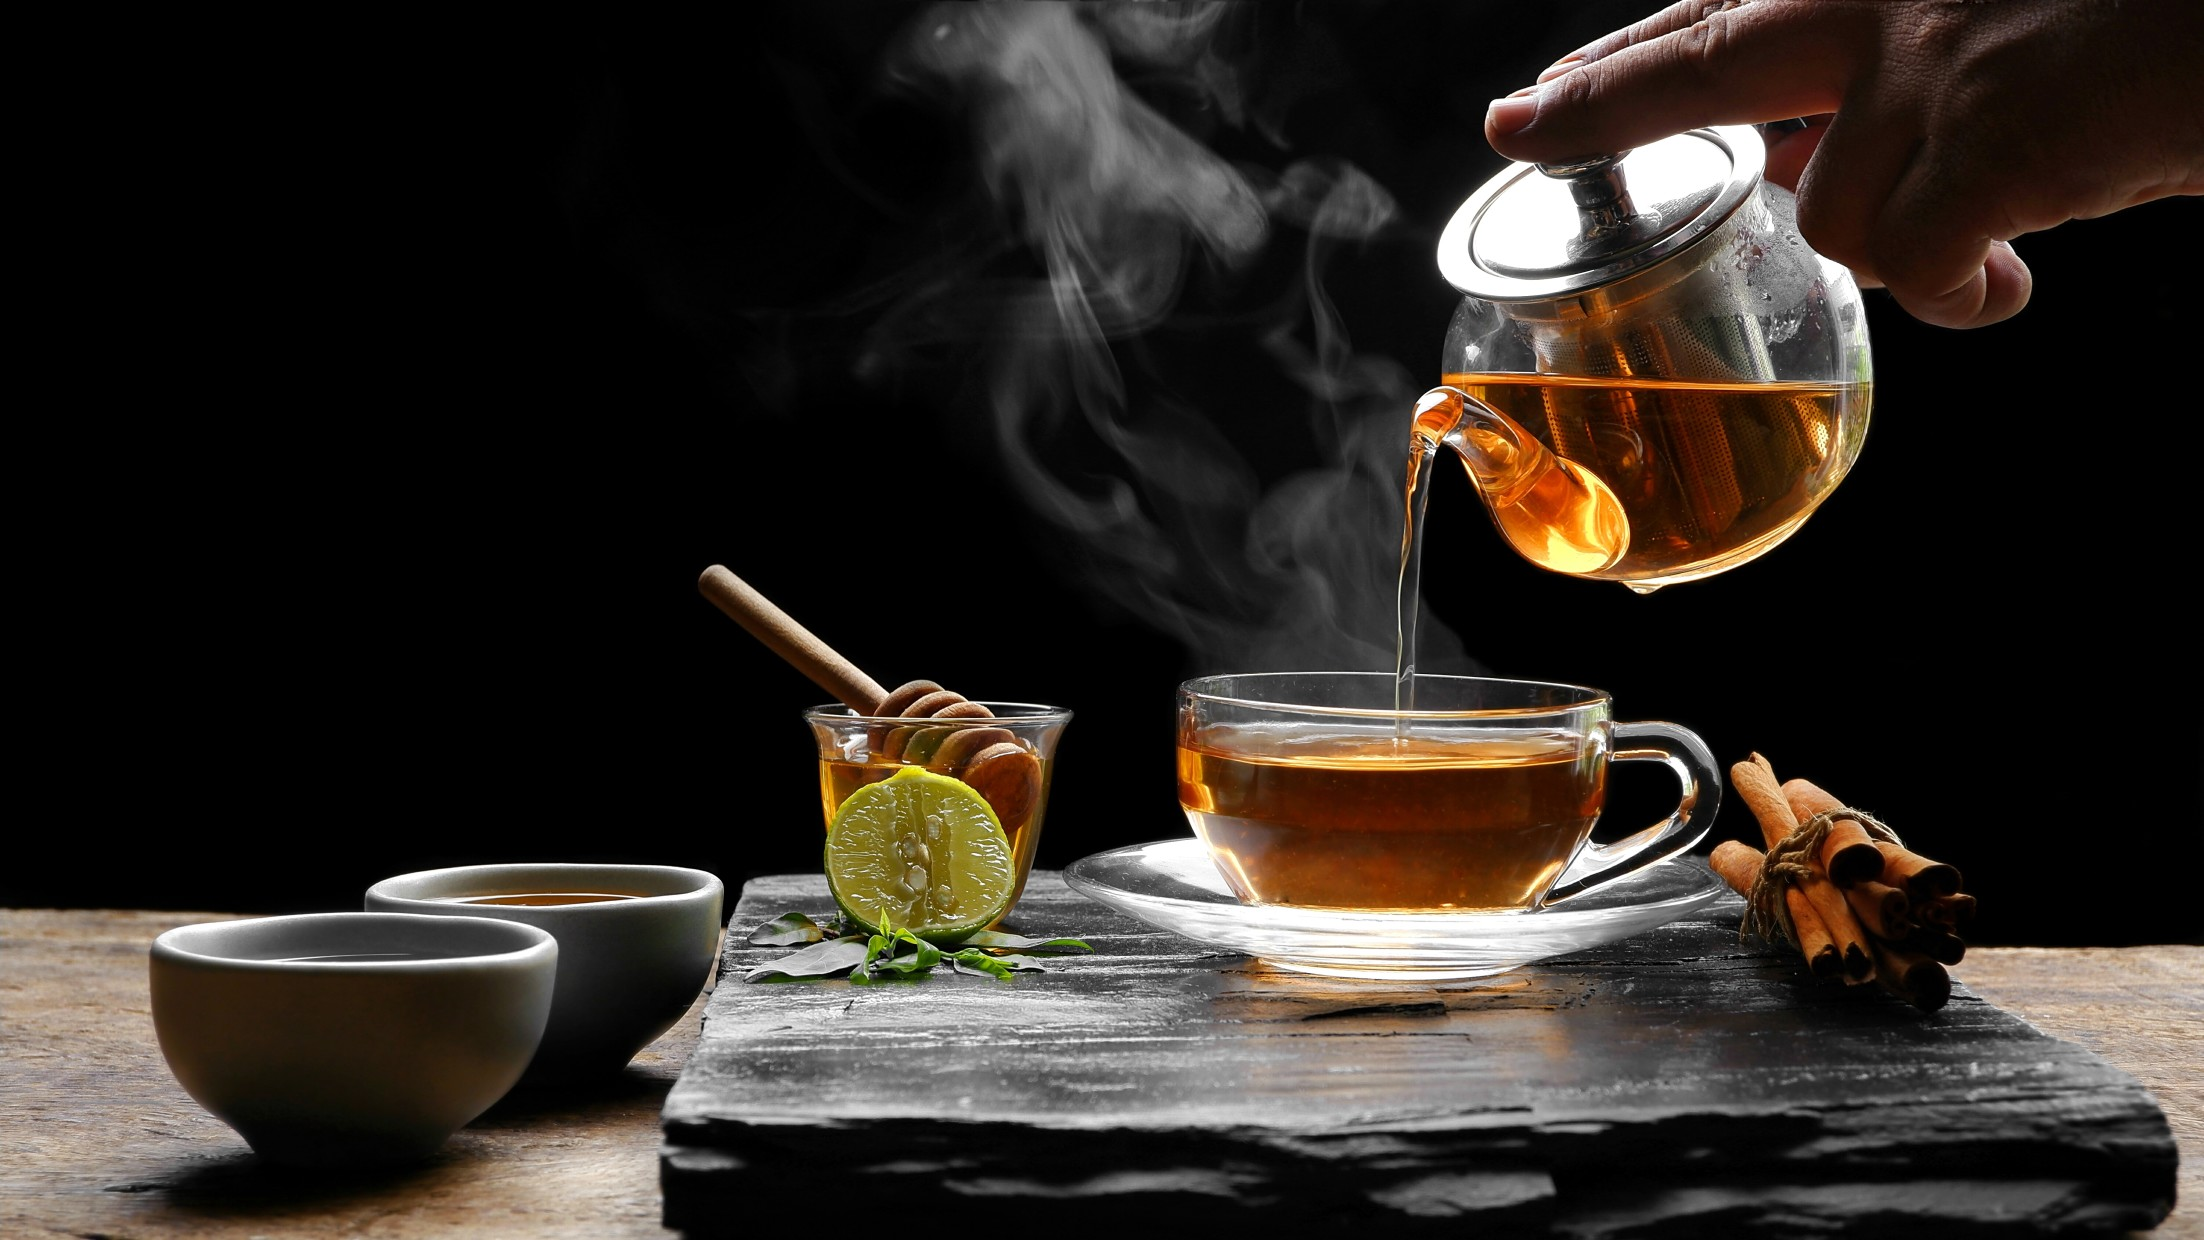 pouring-hot-aromatic-herbal-tea-from-teapot-into-glass-teacup-set-with-steam-and-various-herbs-on_t20_yXbY7a